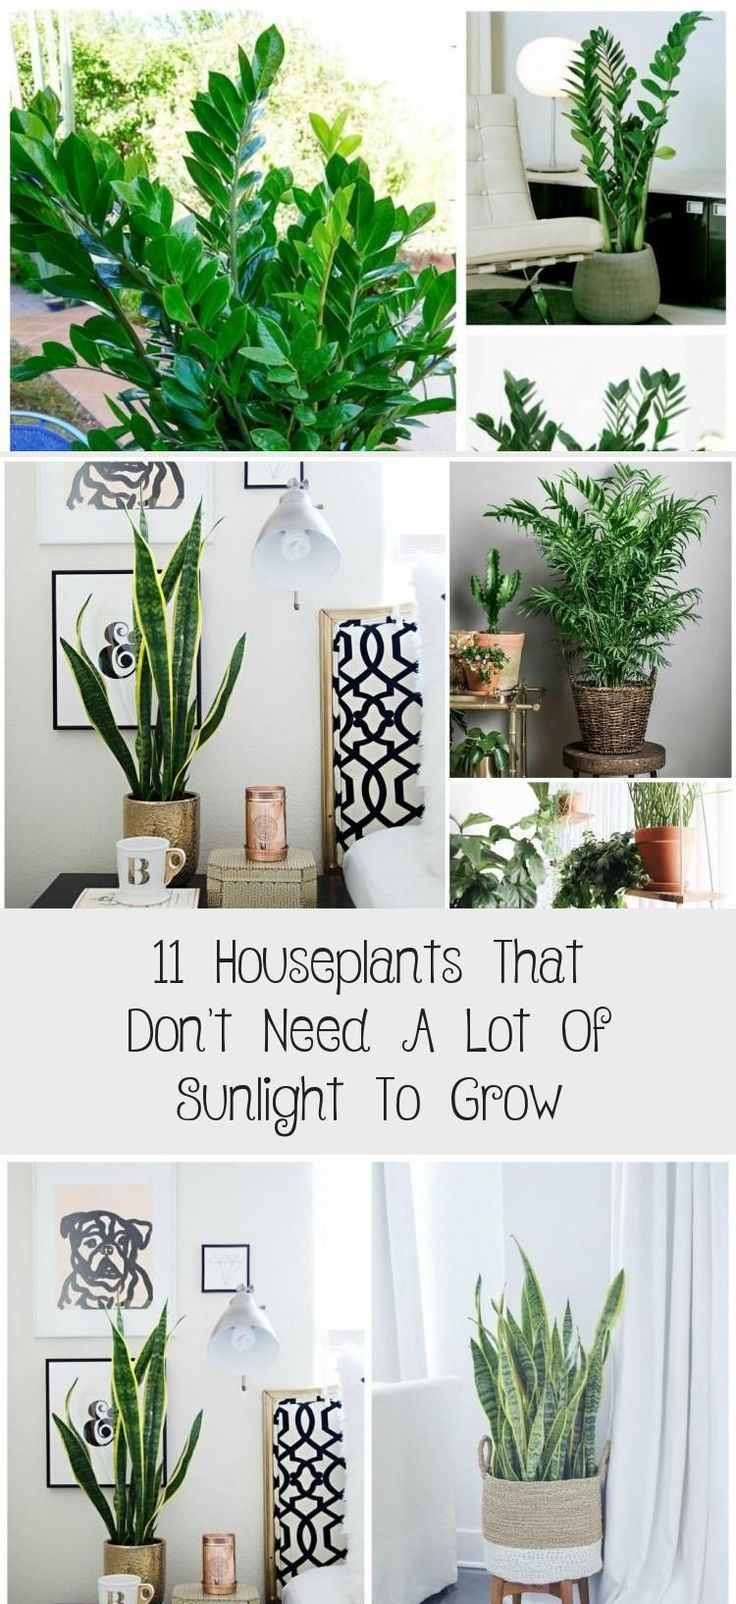 Super Plants That Dont Need Sunlight Green Ideas Plants In 2020 Plants Easy Plants To Grow Easy Plants